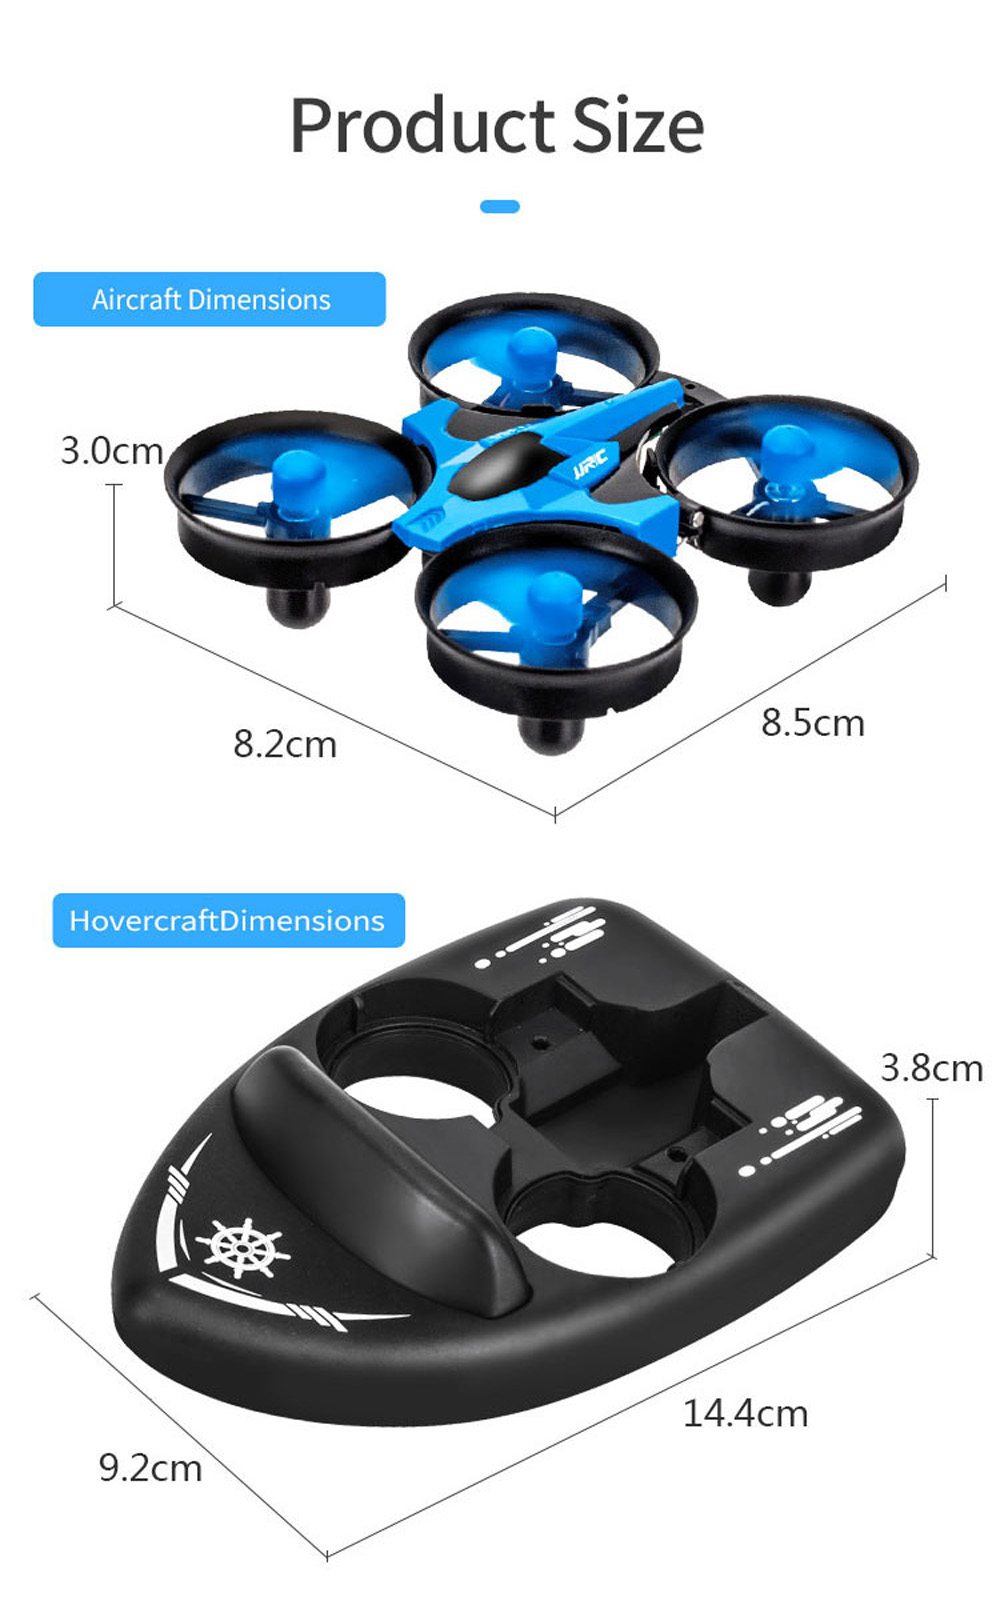 JJRC H36S RC Aircraft Drone Toy - Deep Sky Blue